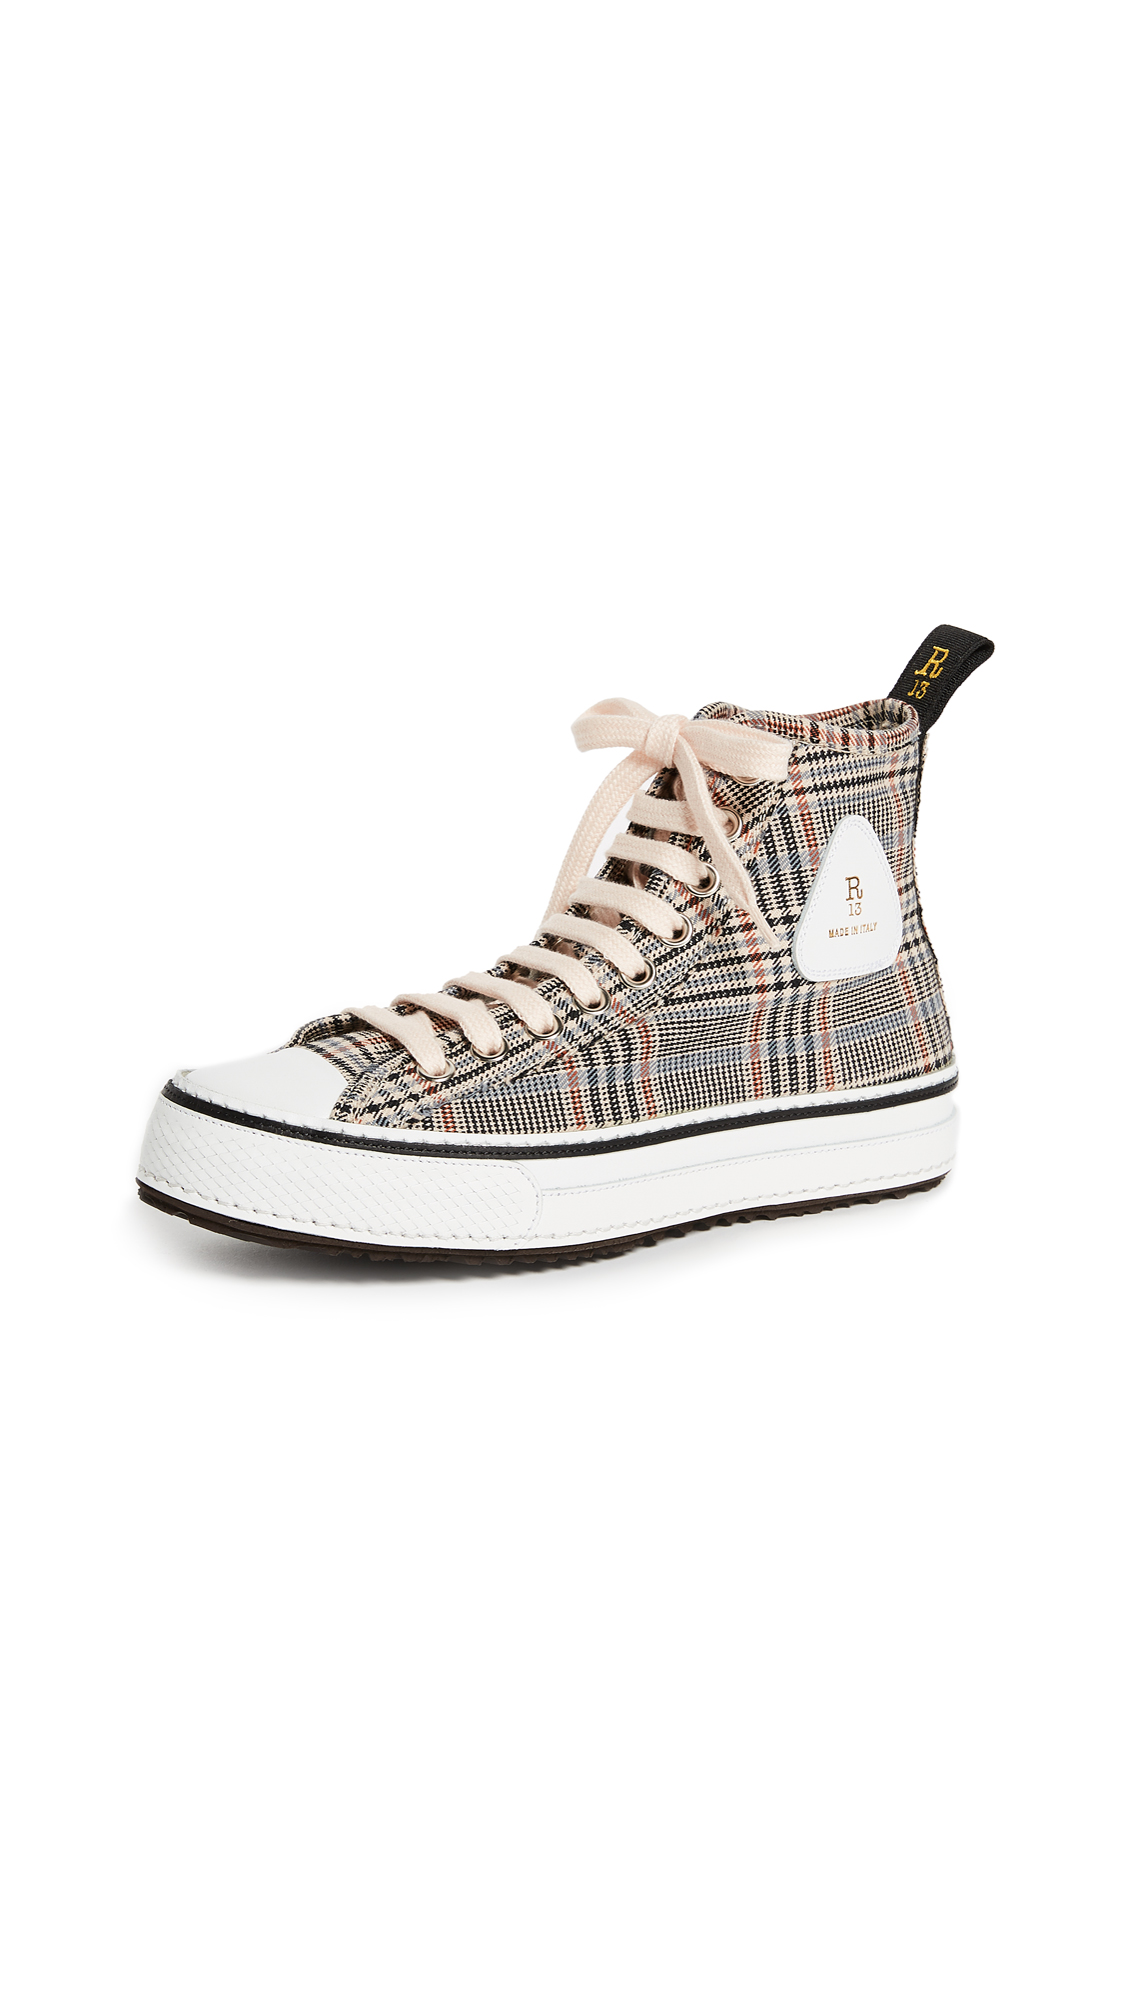 R13 Plaid Twill High Top Sneakers - Orange Plaid